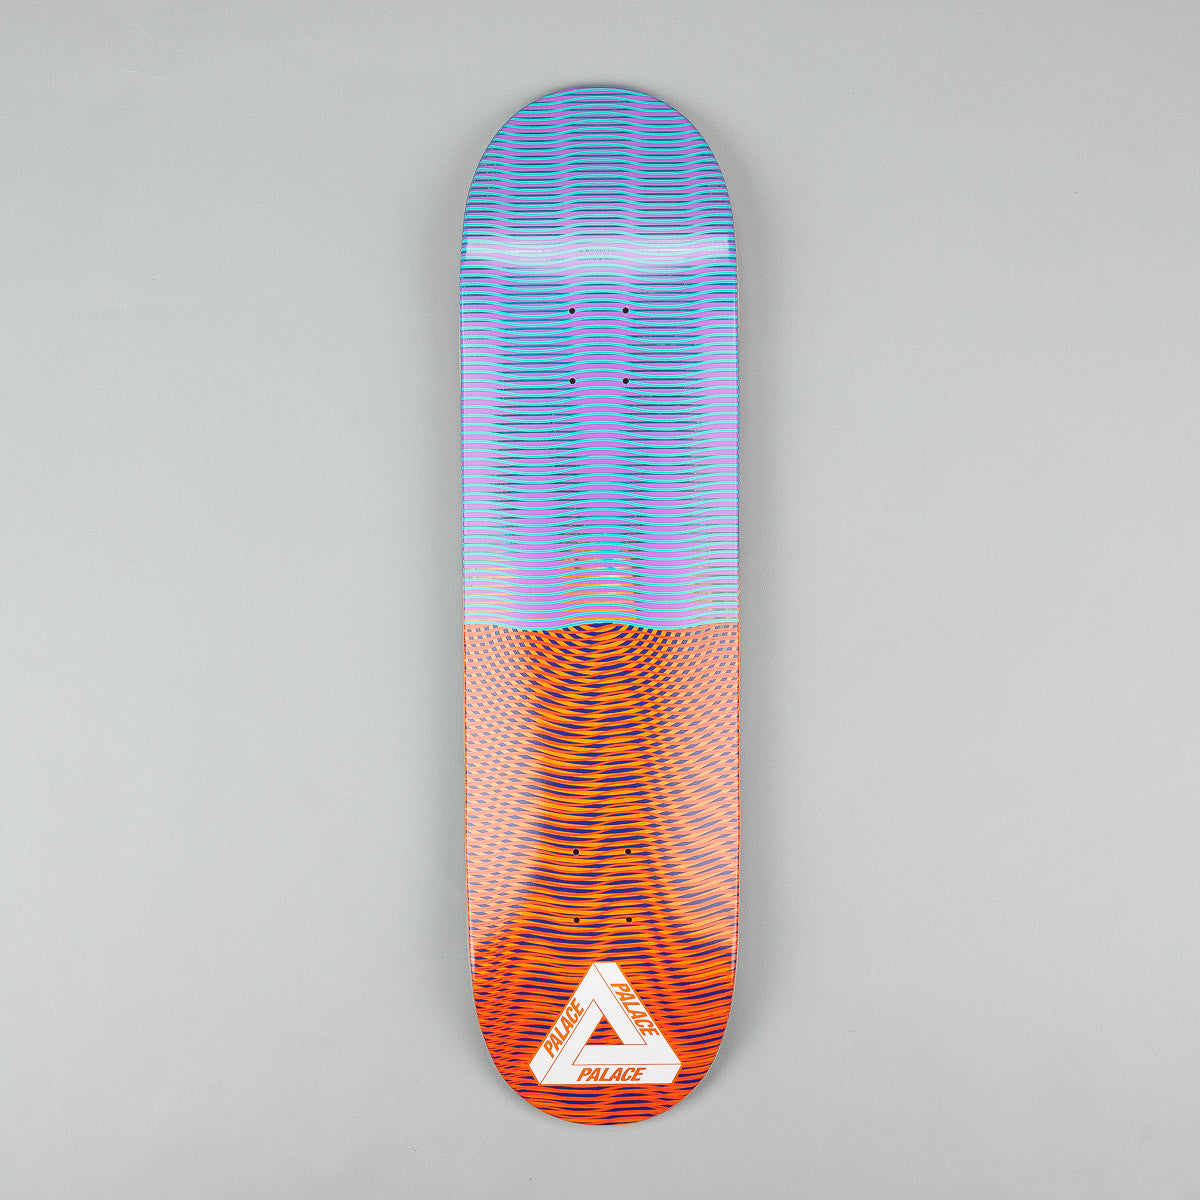 Palace Trippy Deck